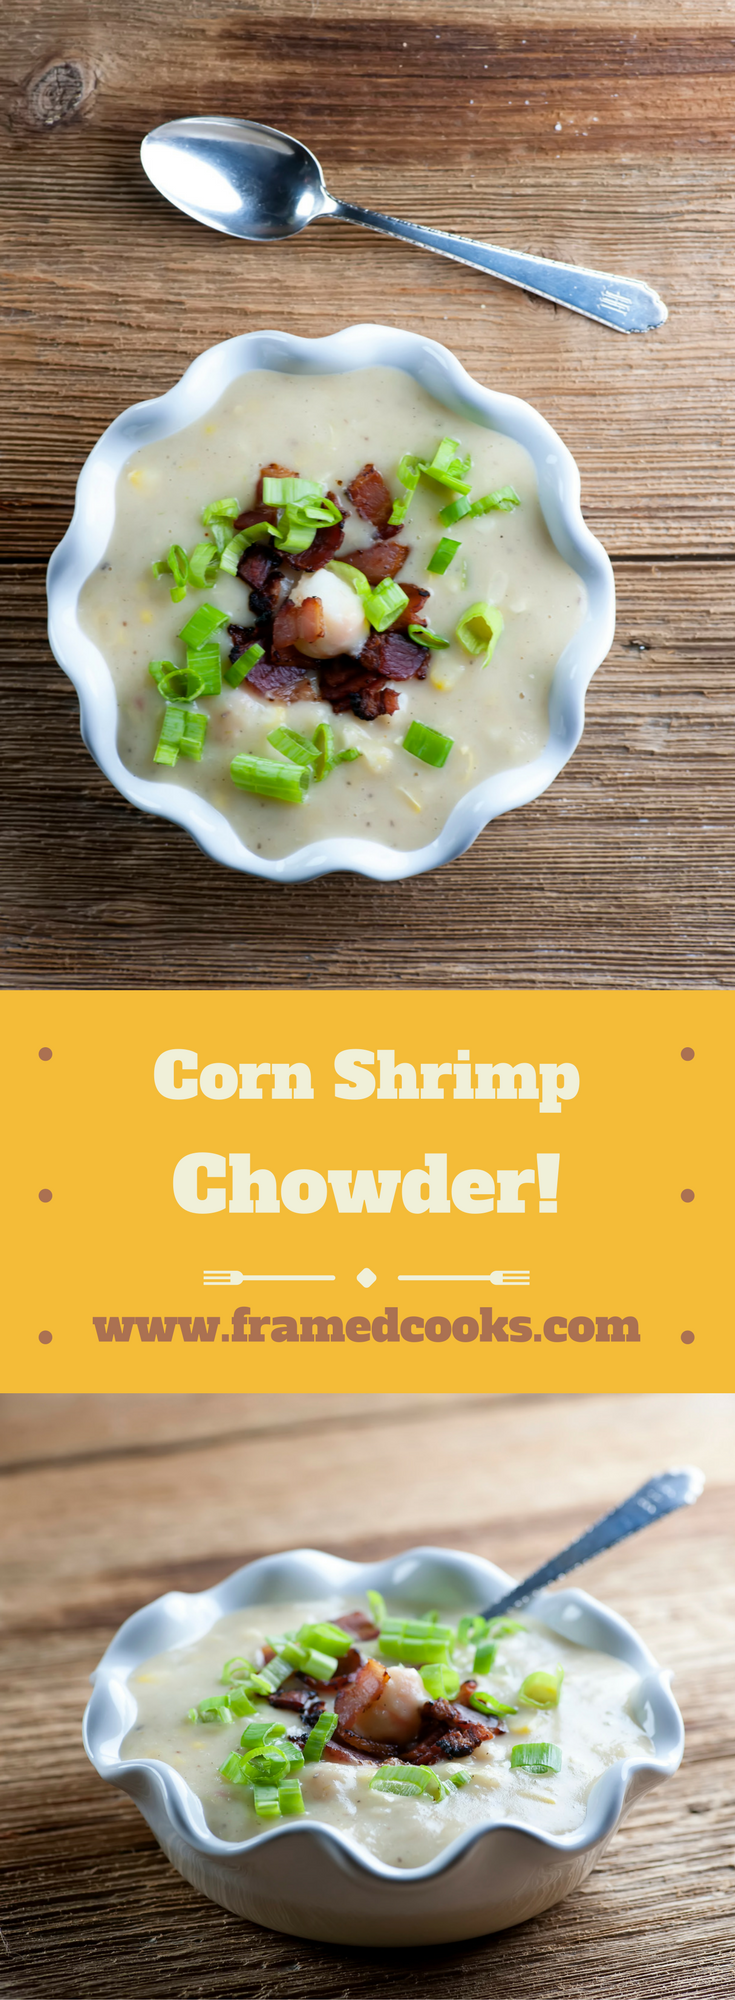 This easy recipe for corn shrimp chowder has so many wonderful flavors of summer!  Sweet corn, tender shrimp in a creamy soup.